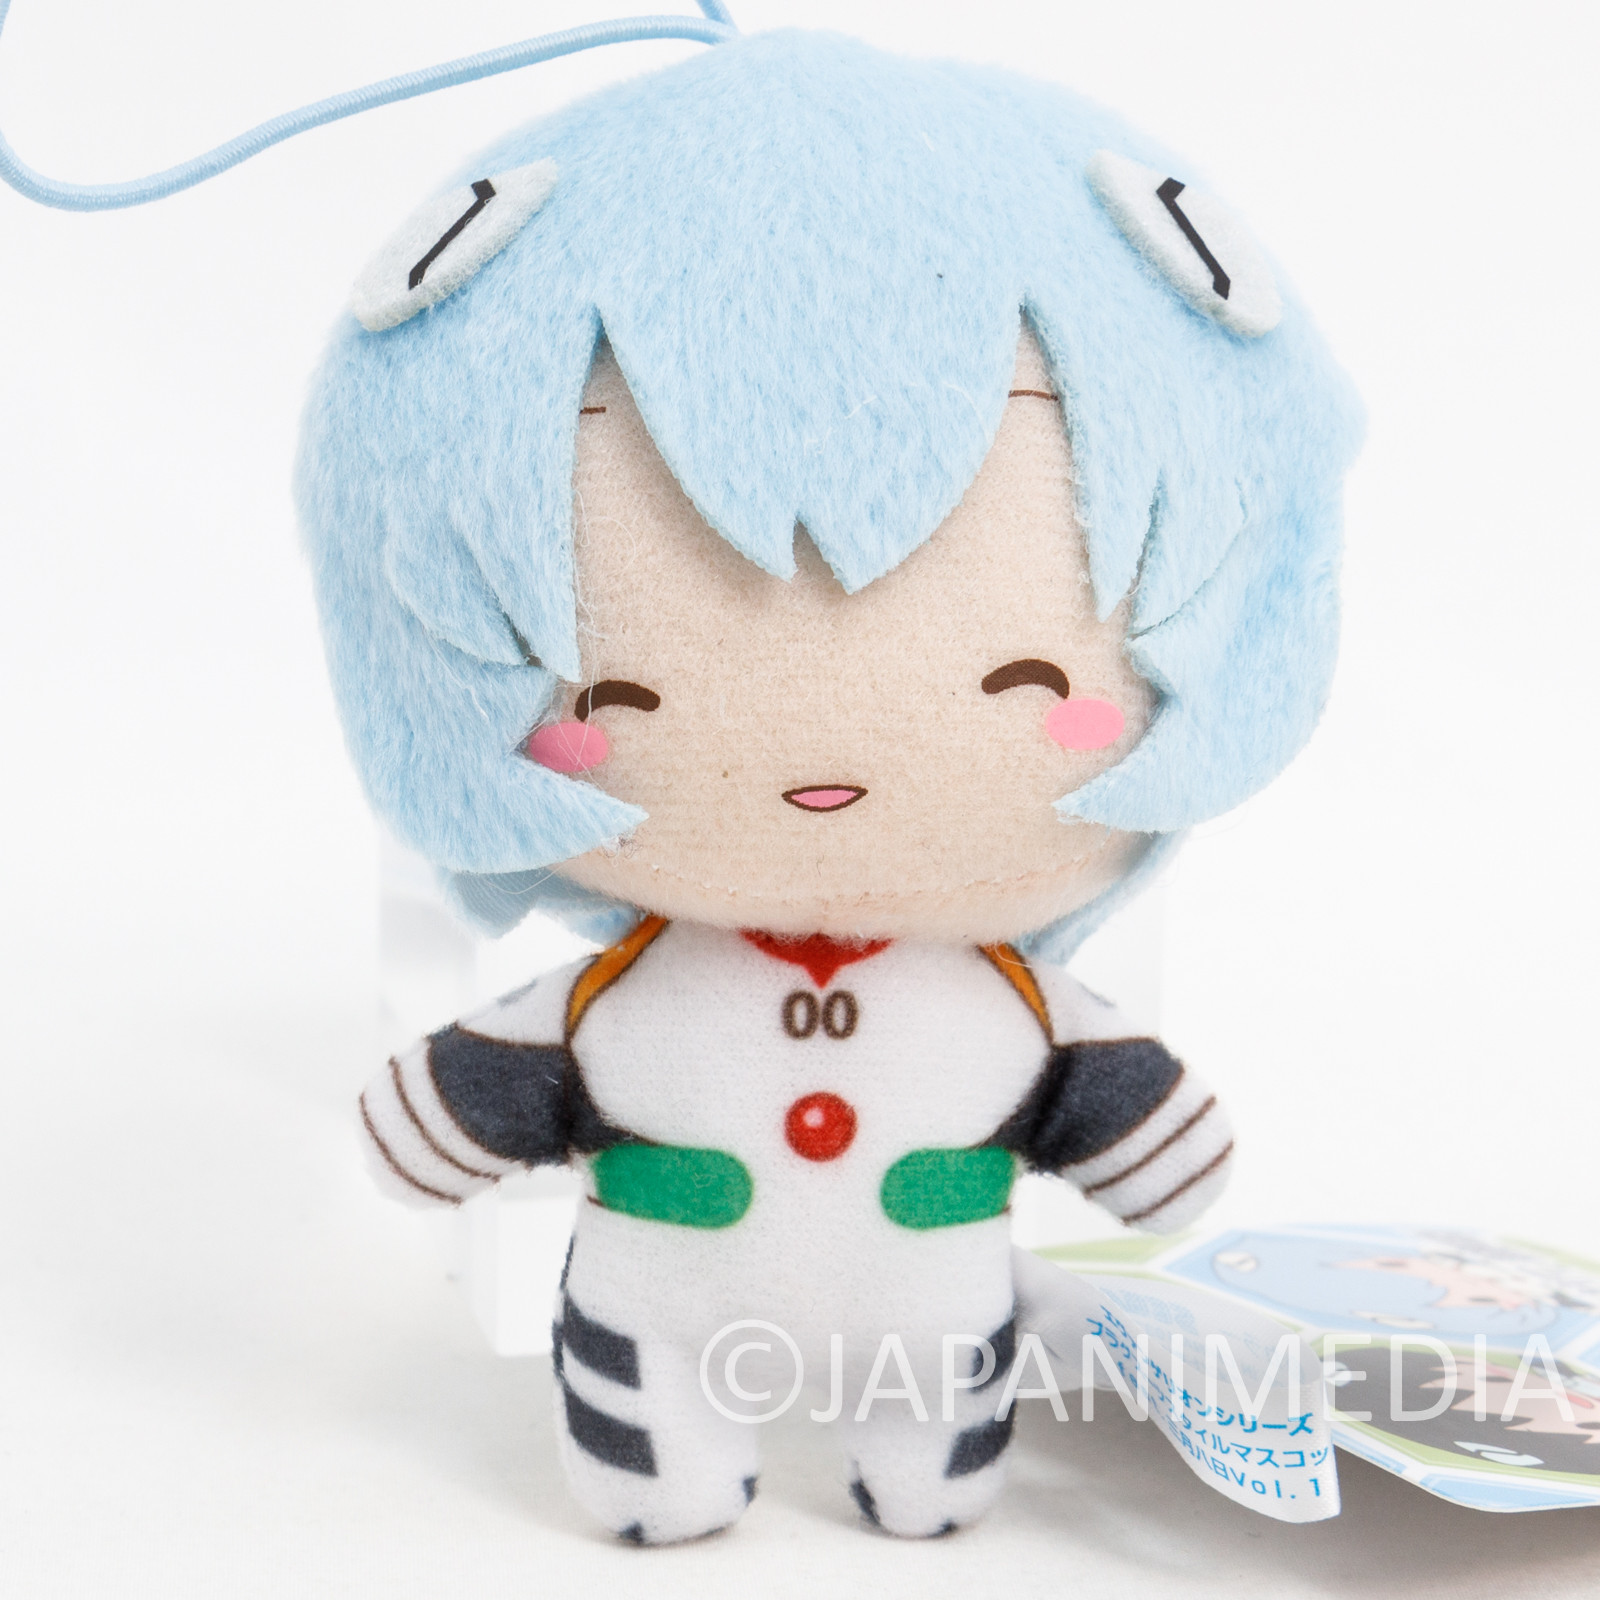 Evangelion Rei Ayanami Plug Suit Smile Mini Plush Doll SEGA JAPAN ANIME MANGA